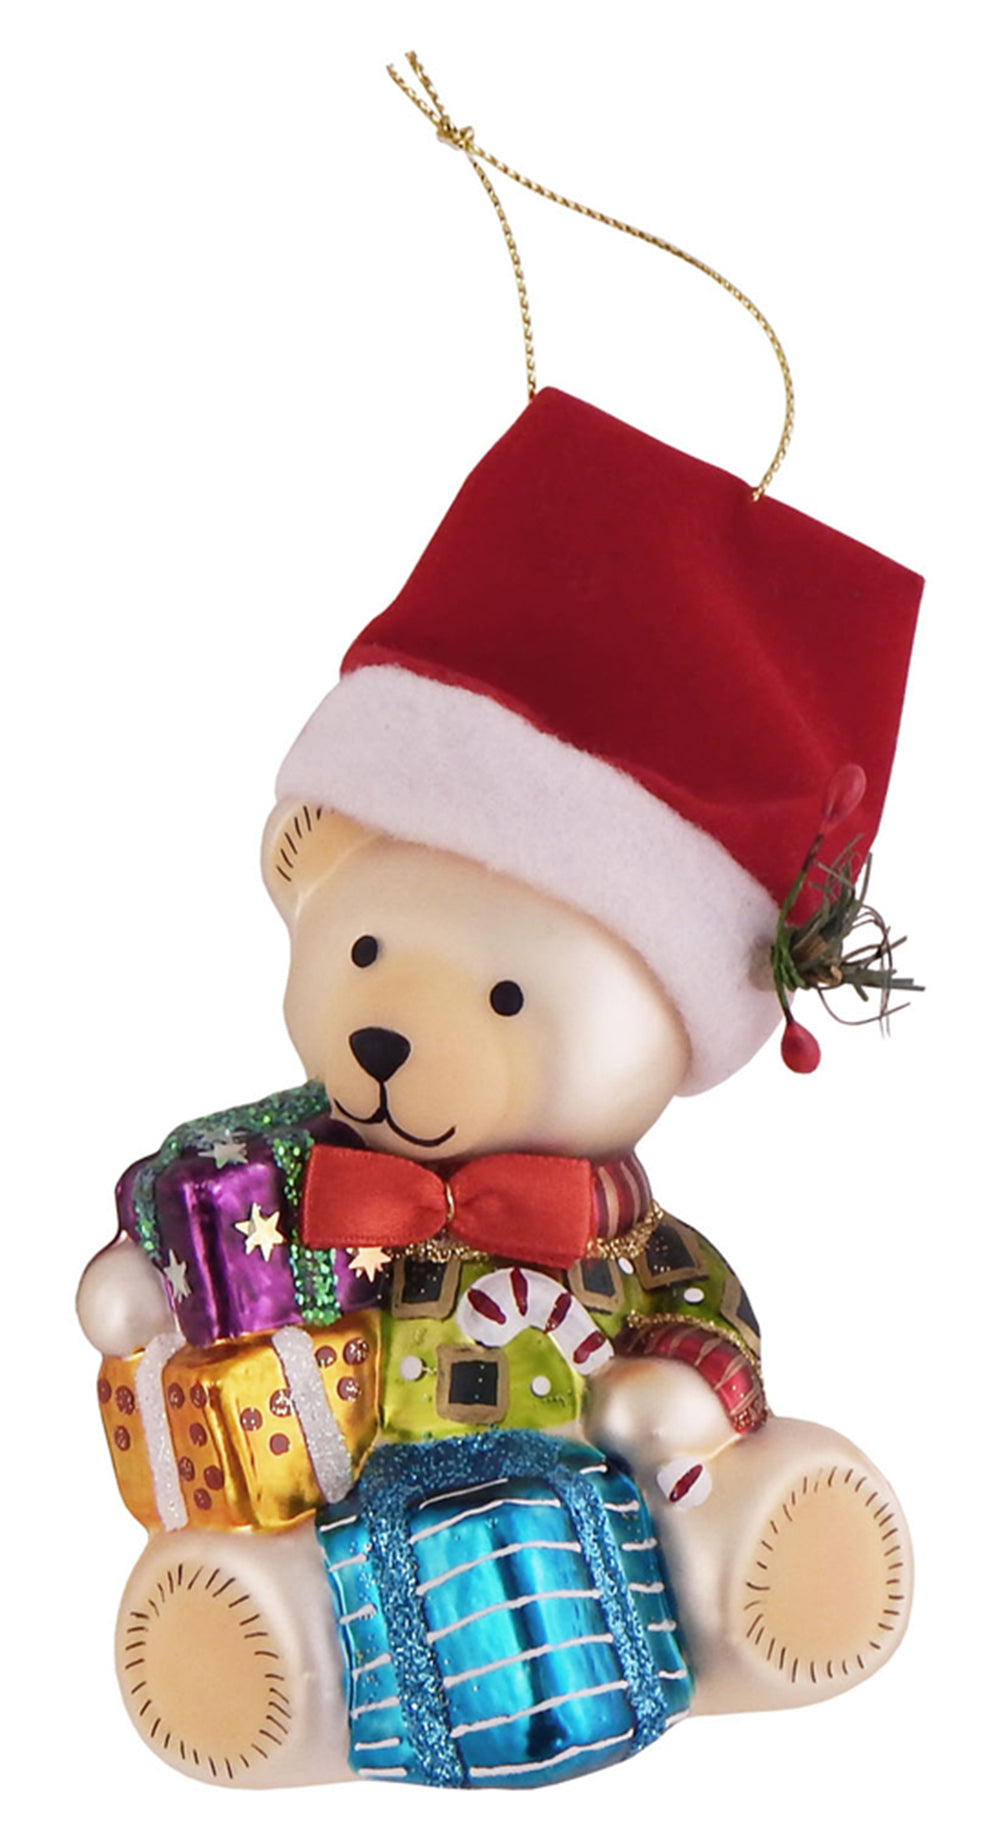 "Krebs Designer Glass Teddy Bear with Gifts Figurine Christmas Holiday Ornament, 5"" (127mm)"